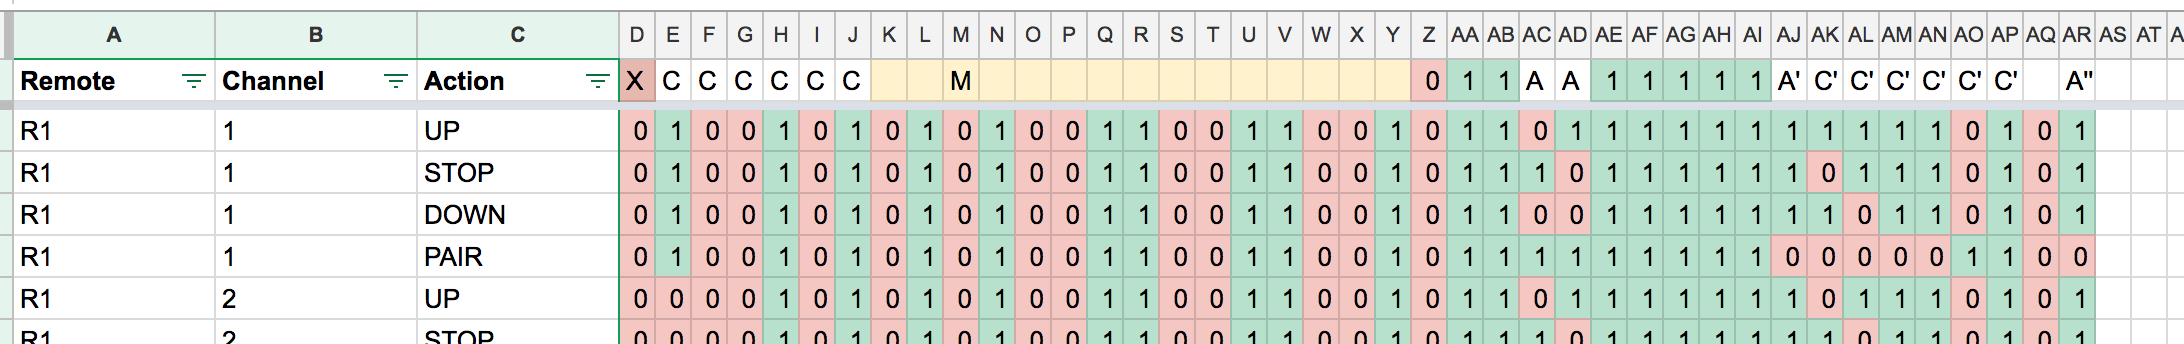 Manchester captures inside a spreadsheet